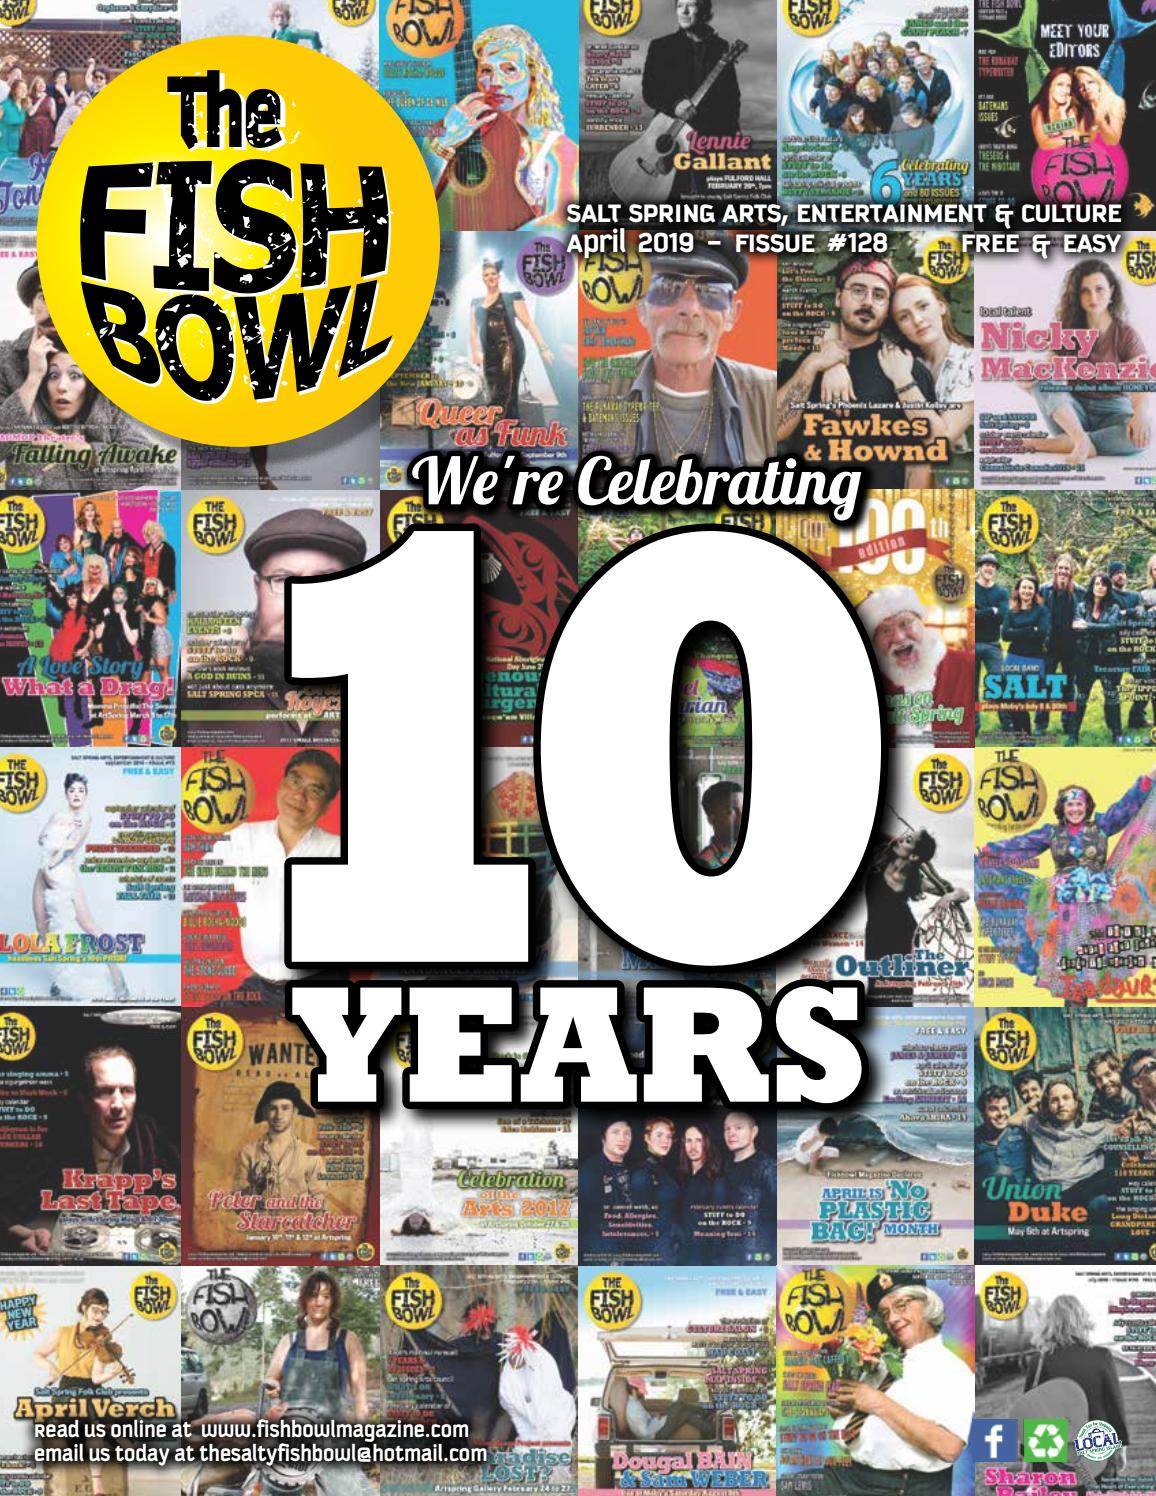 FISHBOWL MAGAZINE APRIL 2019 10TH ANNIVERSARY ISSUE by The